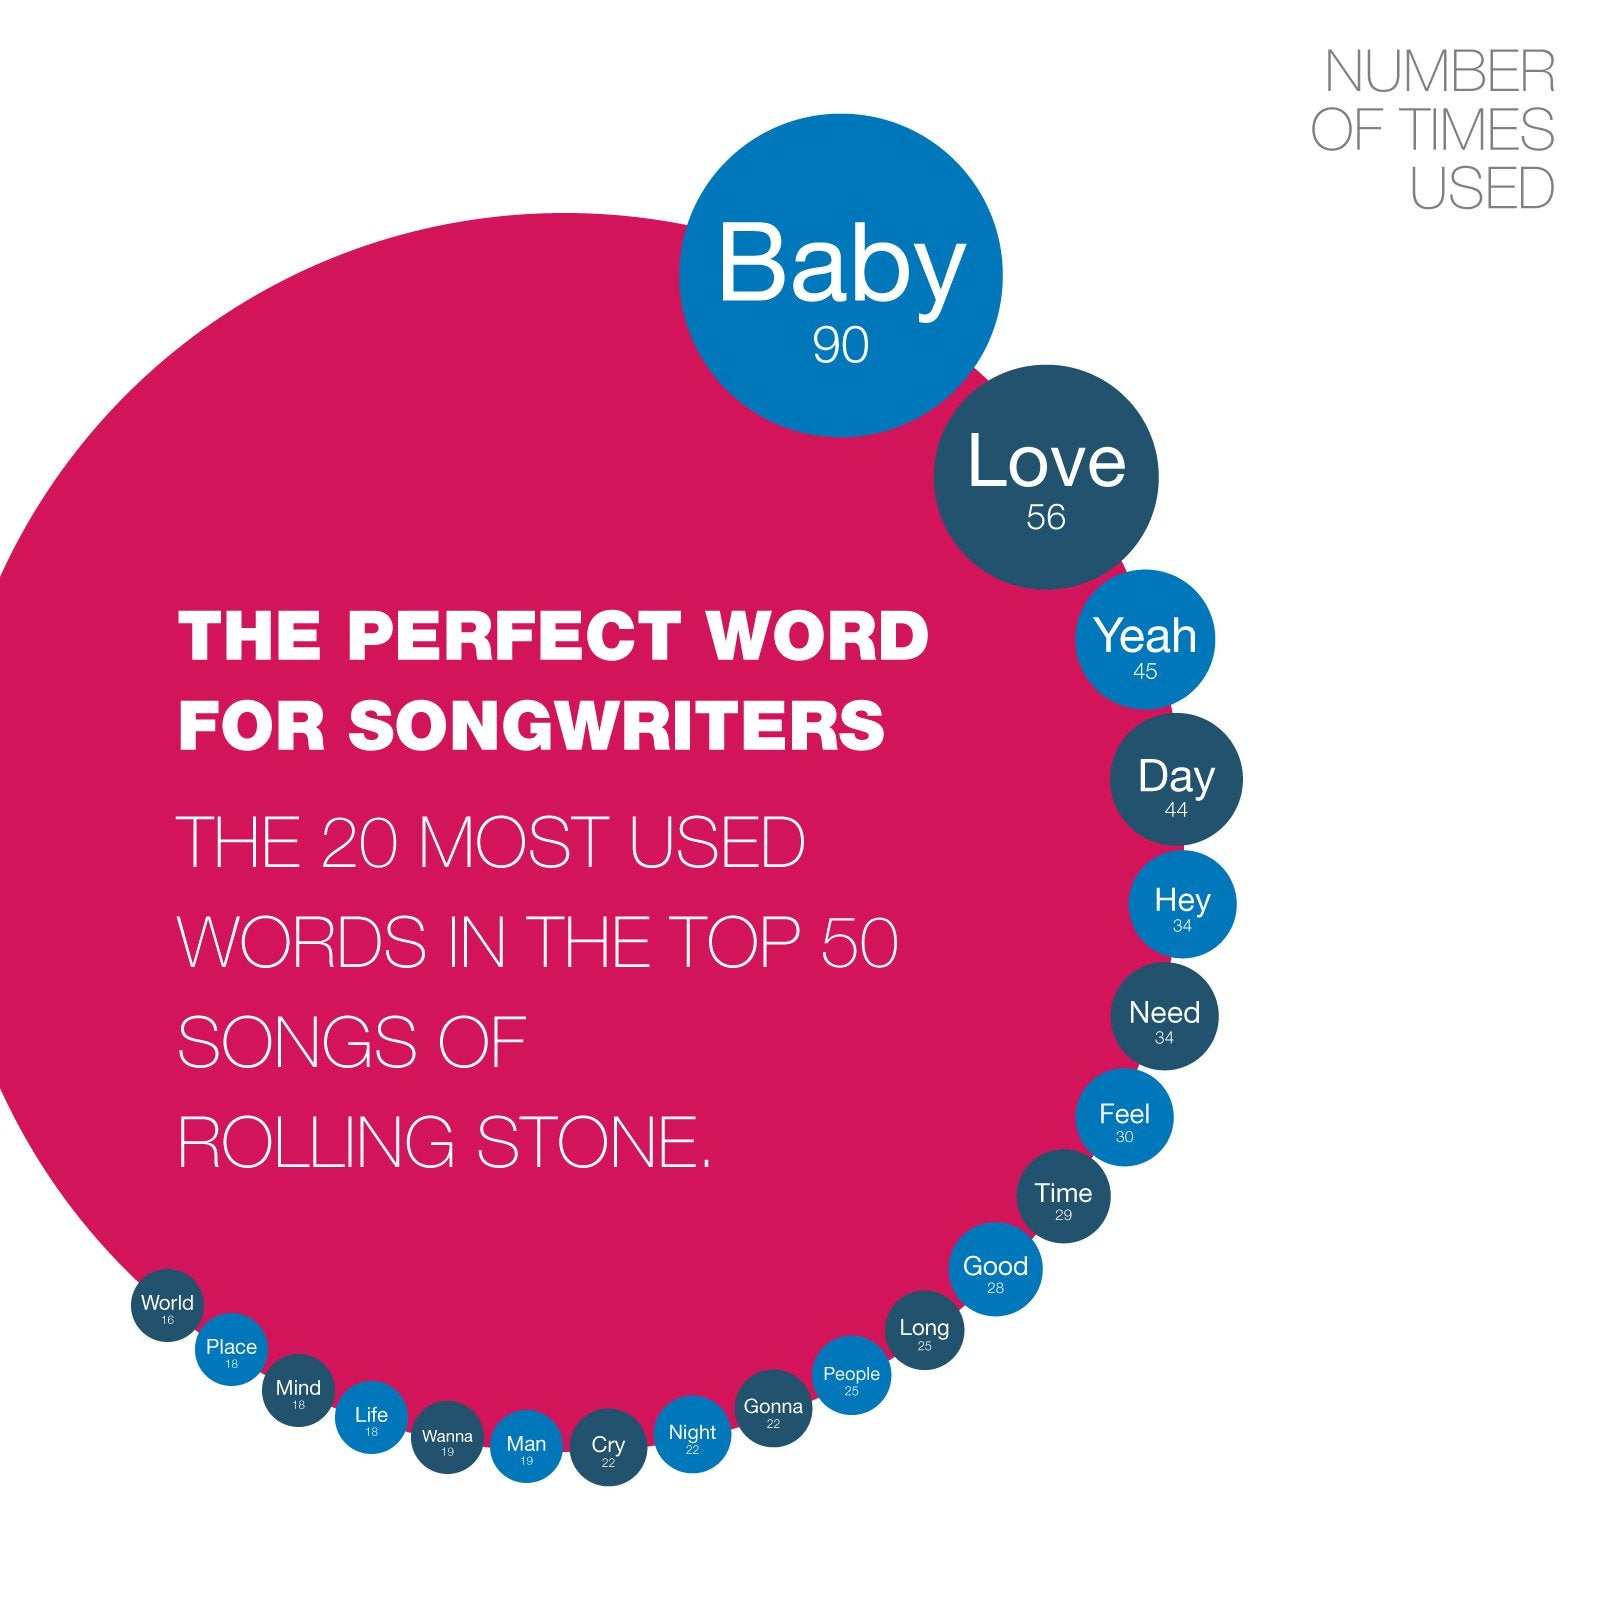 Popular songs with the word baby